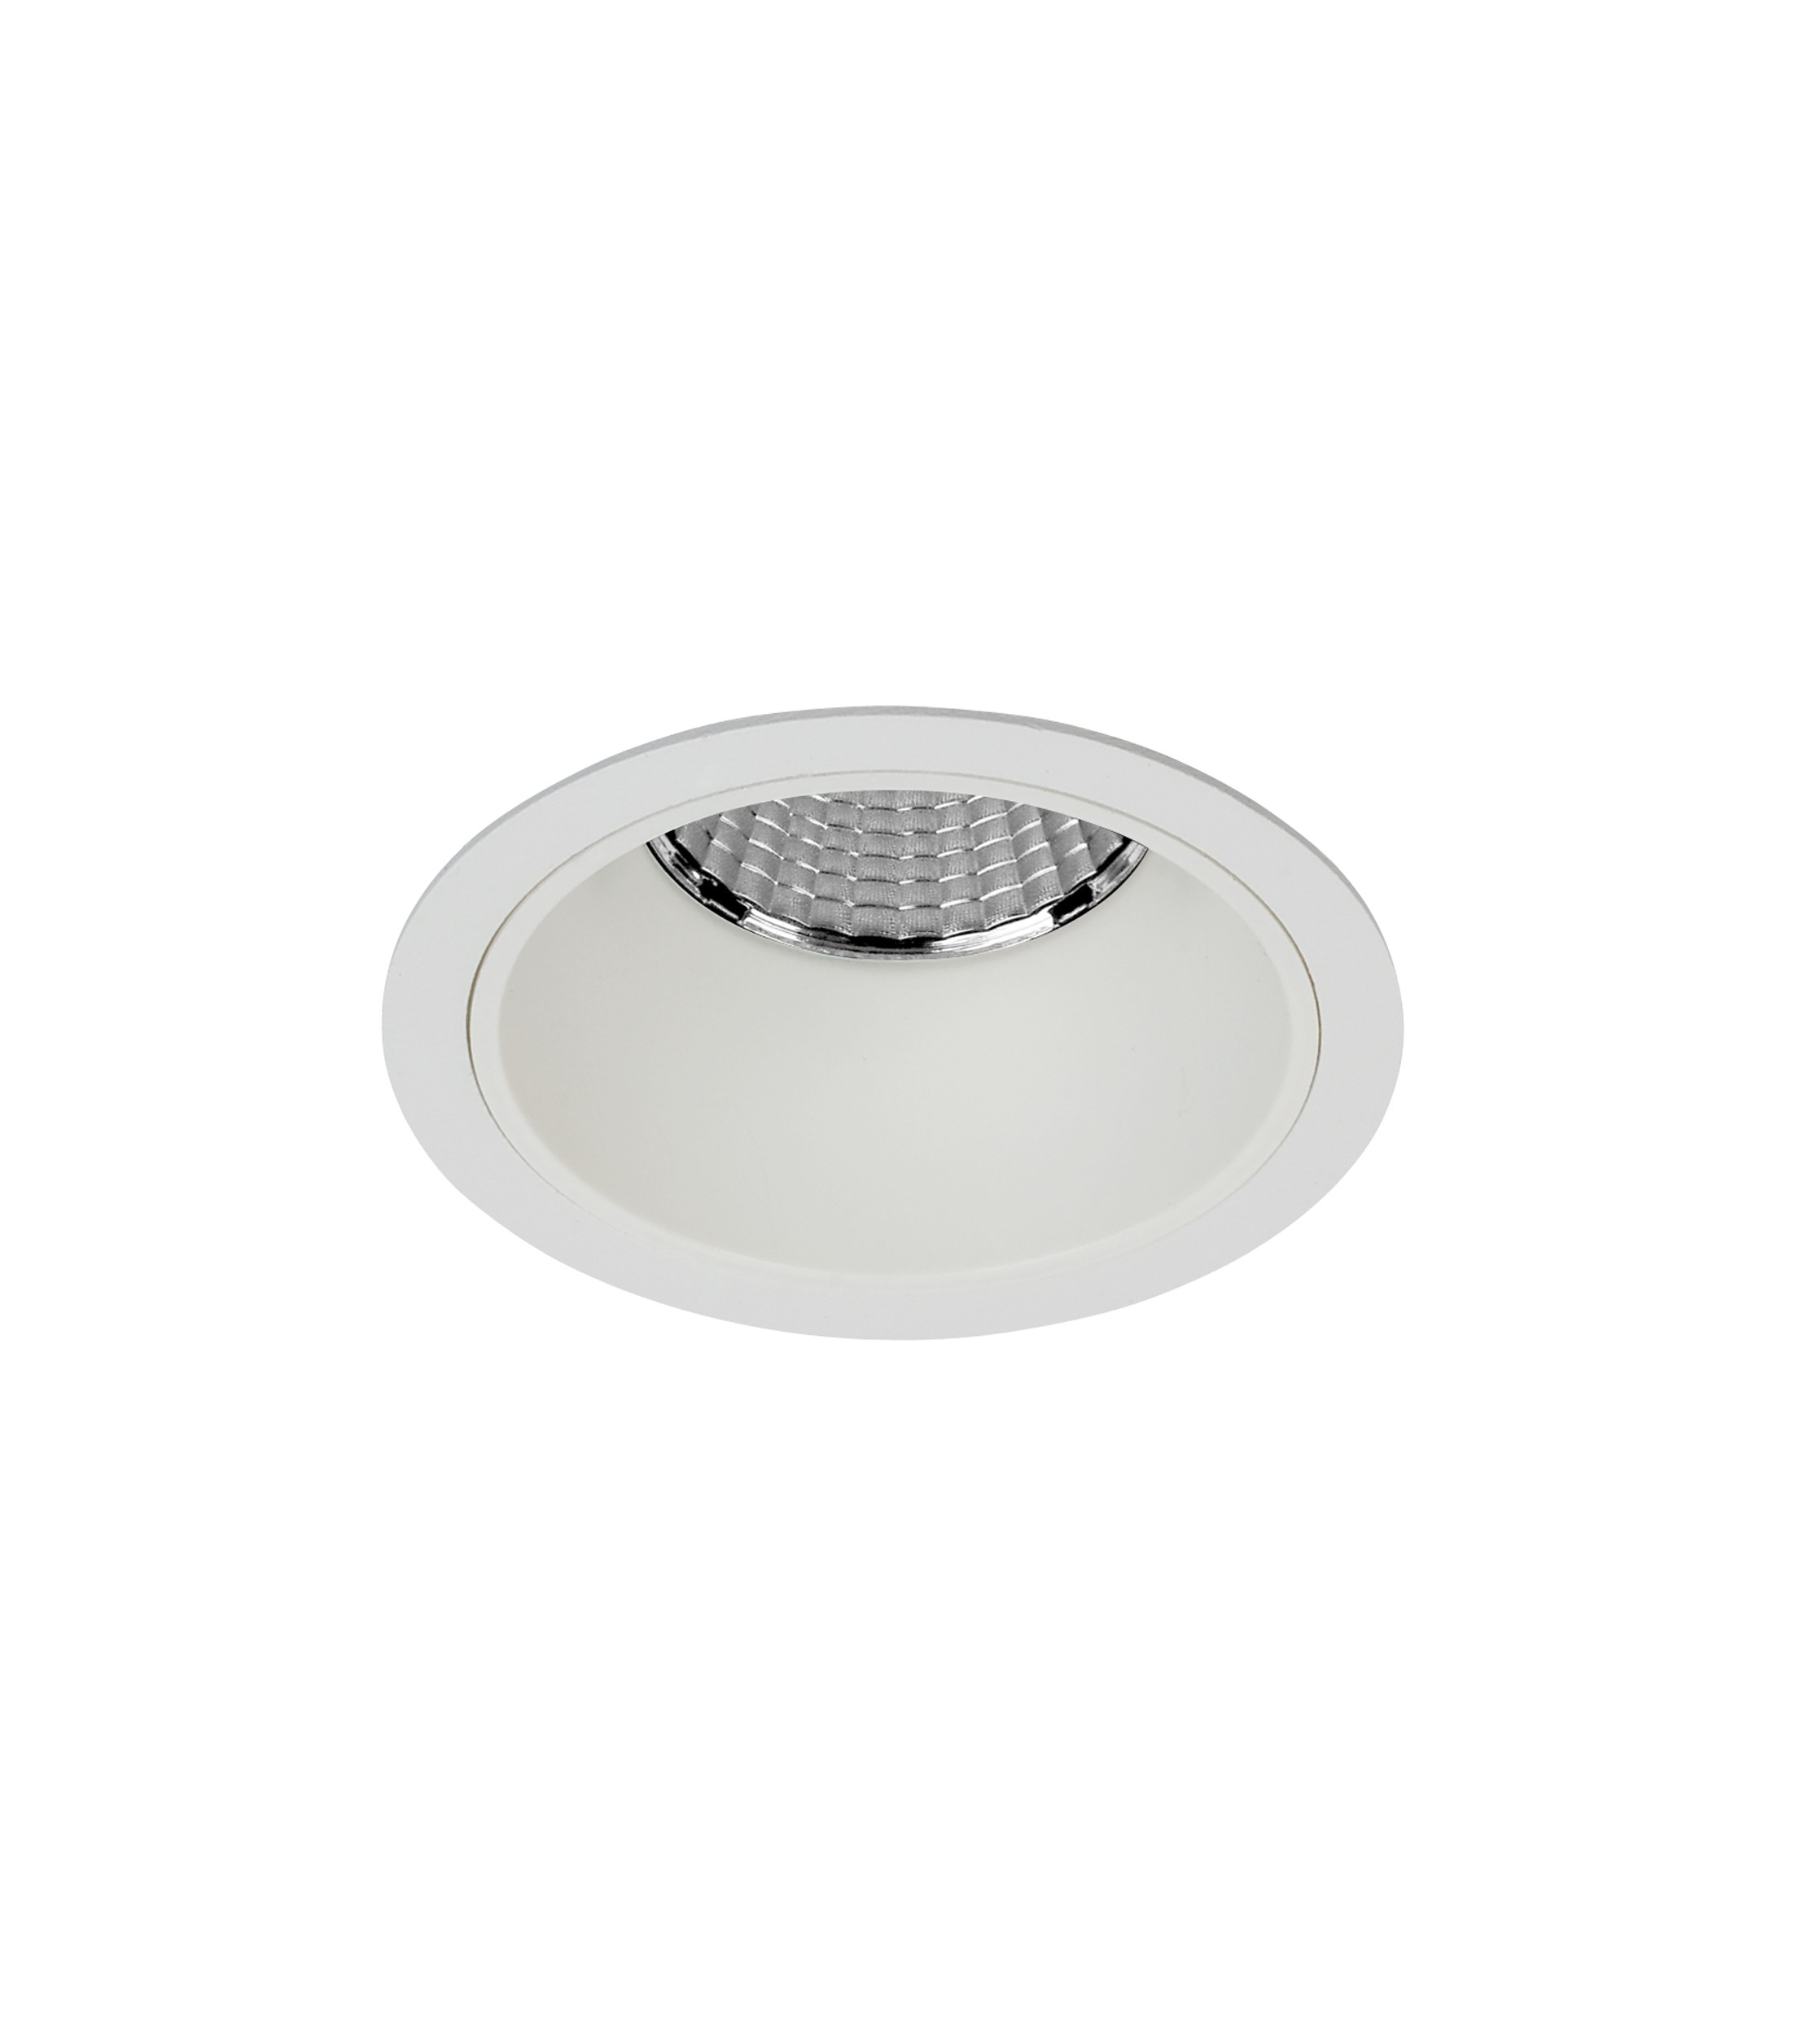 "2.5"" Shallow Round Flanged Fixed Downlight"